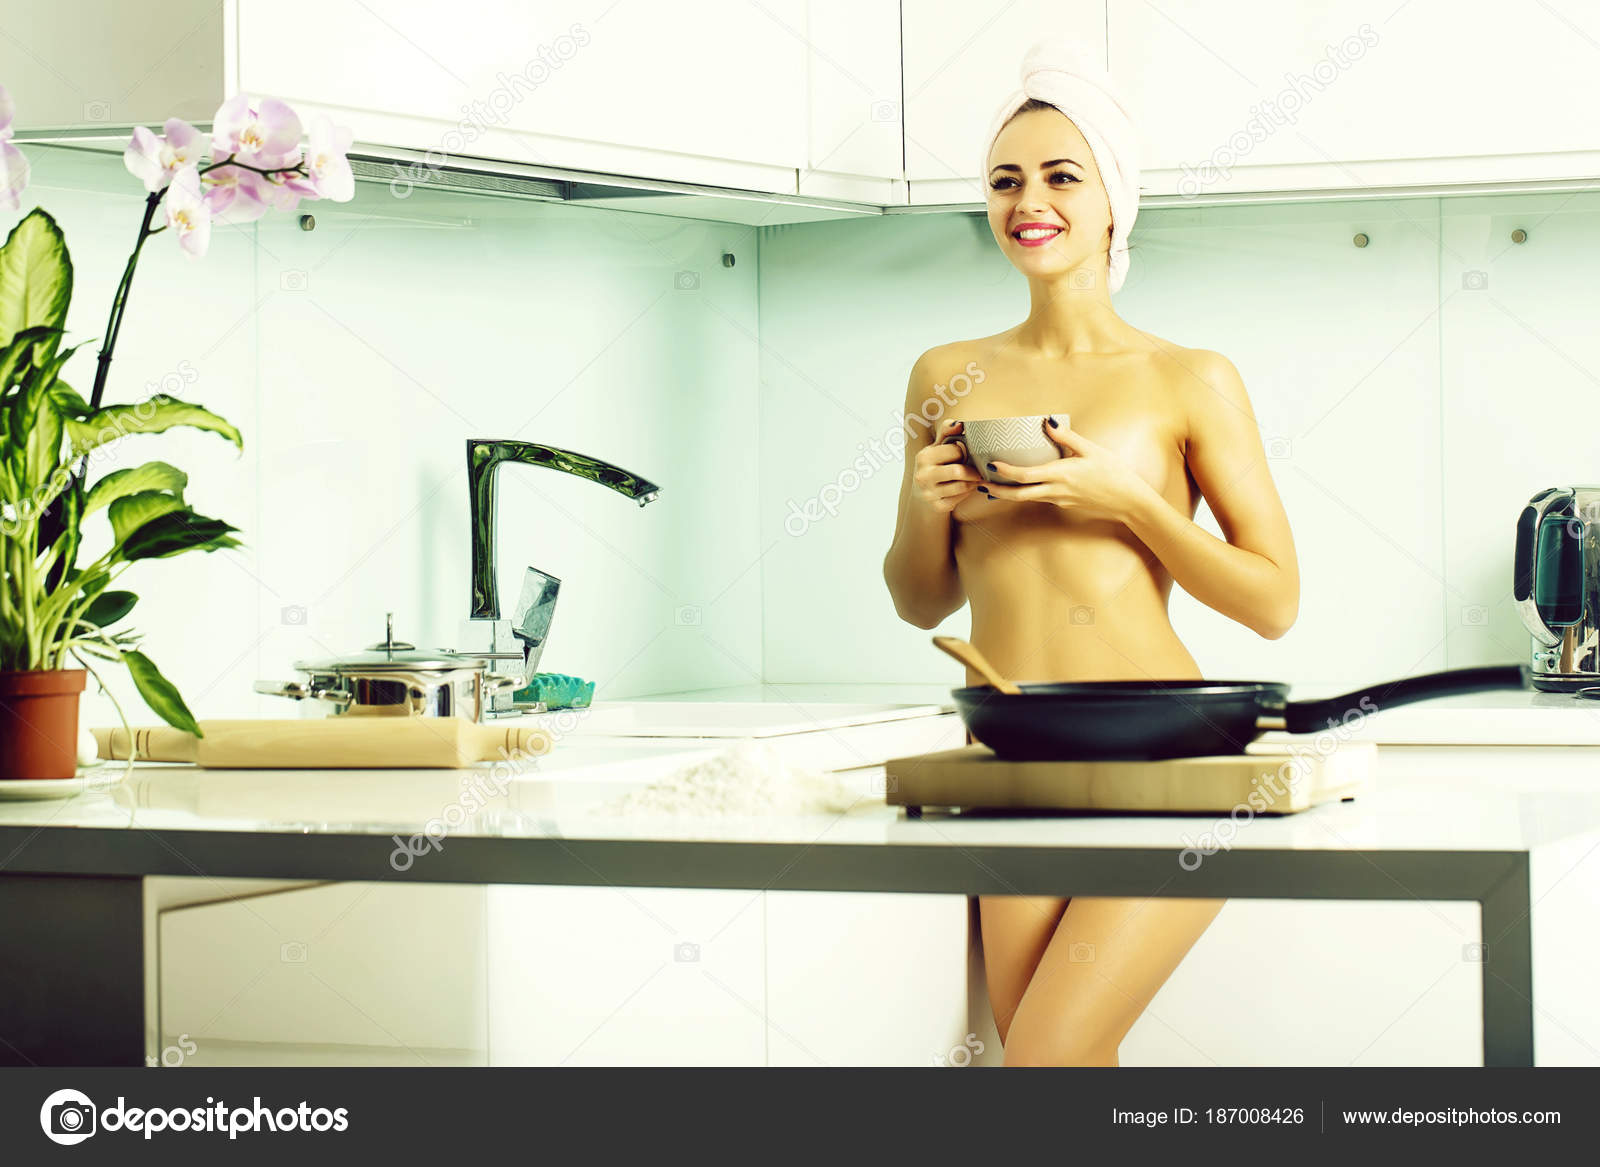 Undressed housewife